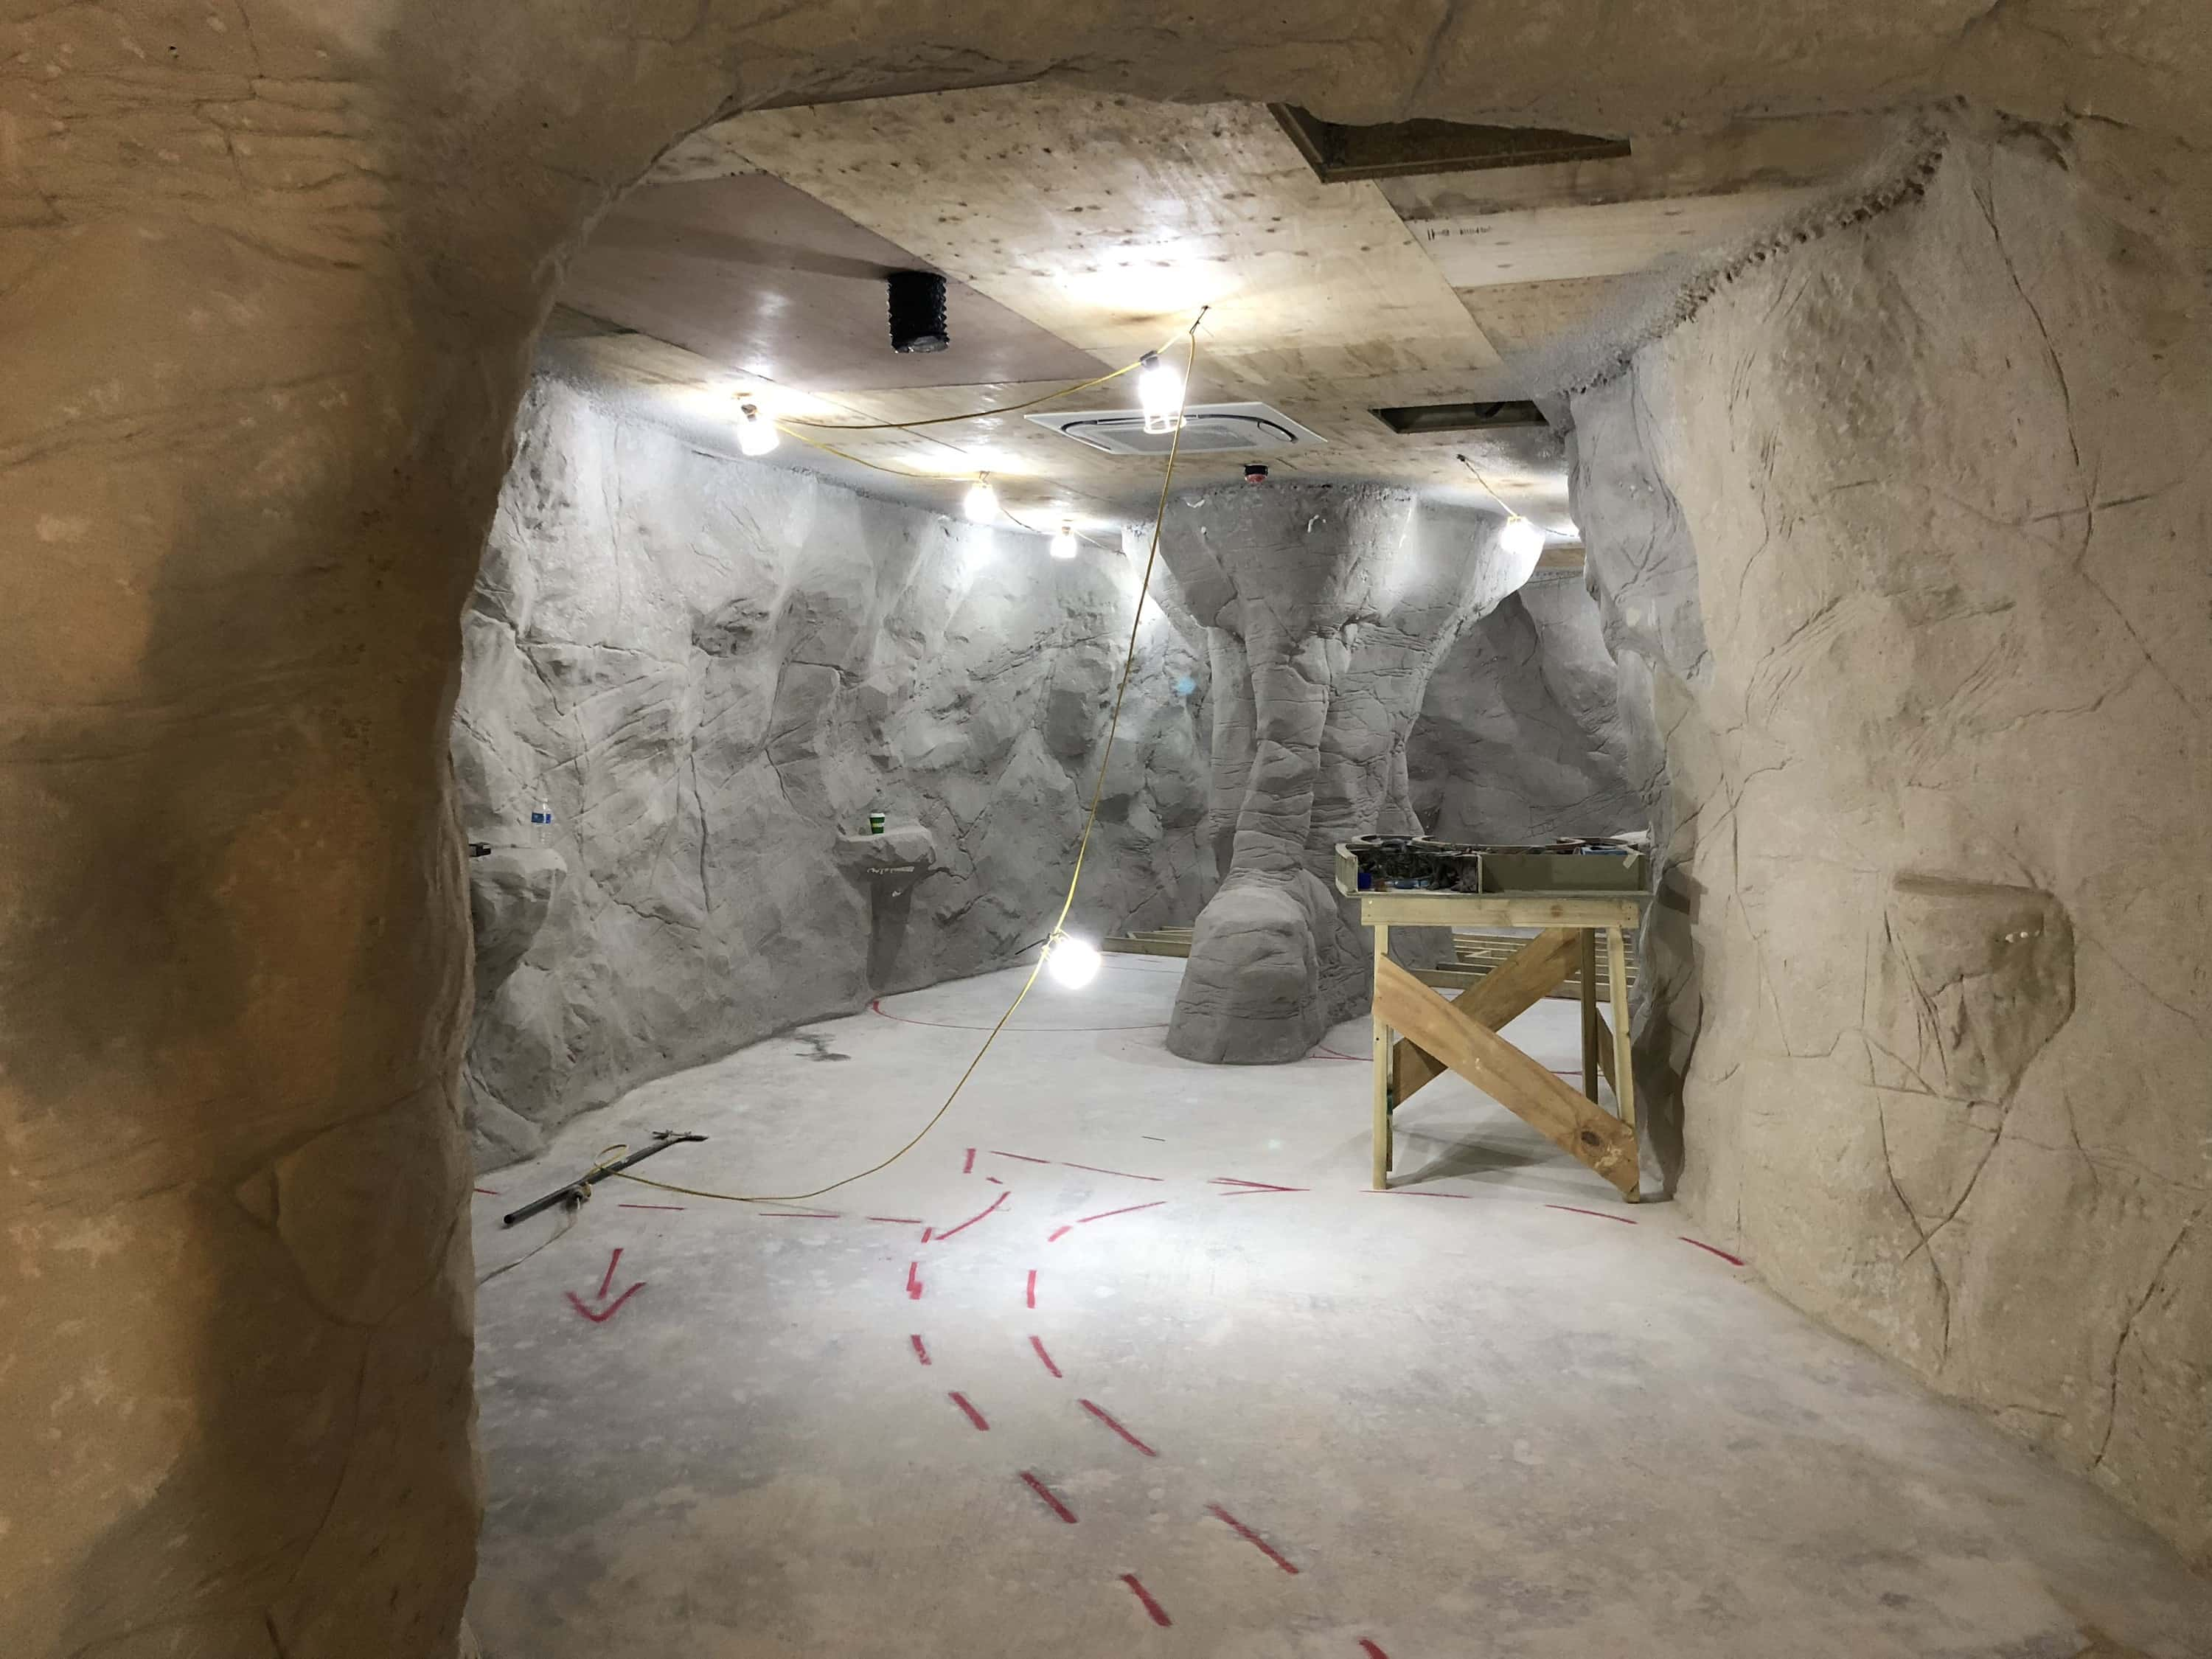 An image of the rockwork cave being created for lost world golf